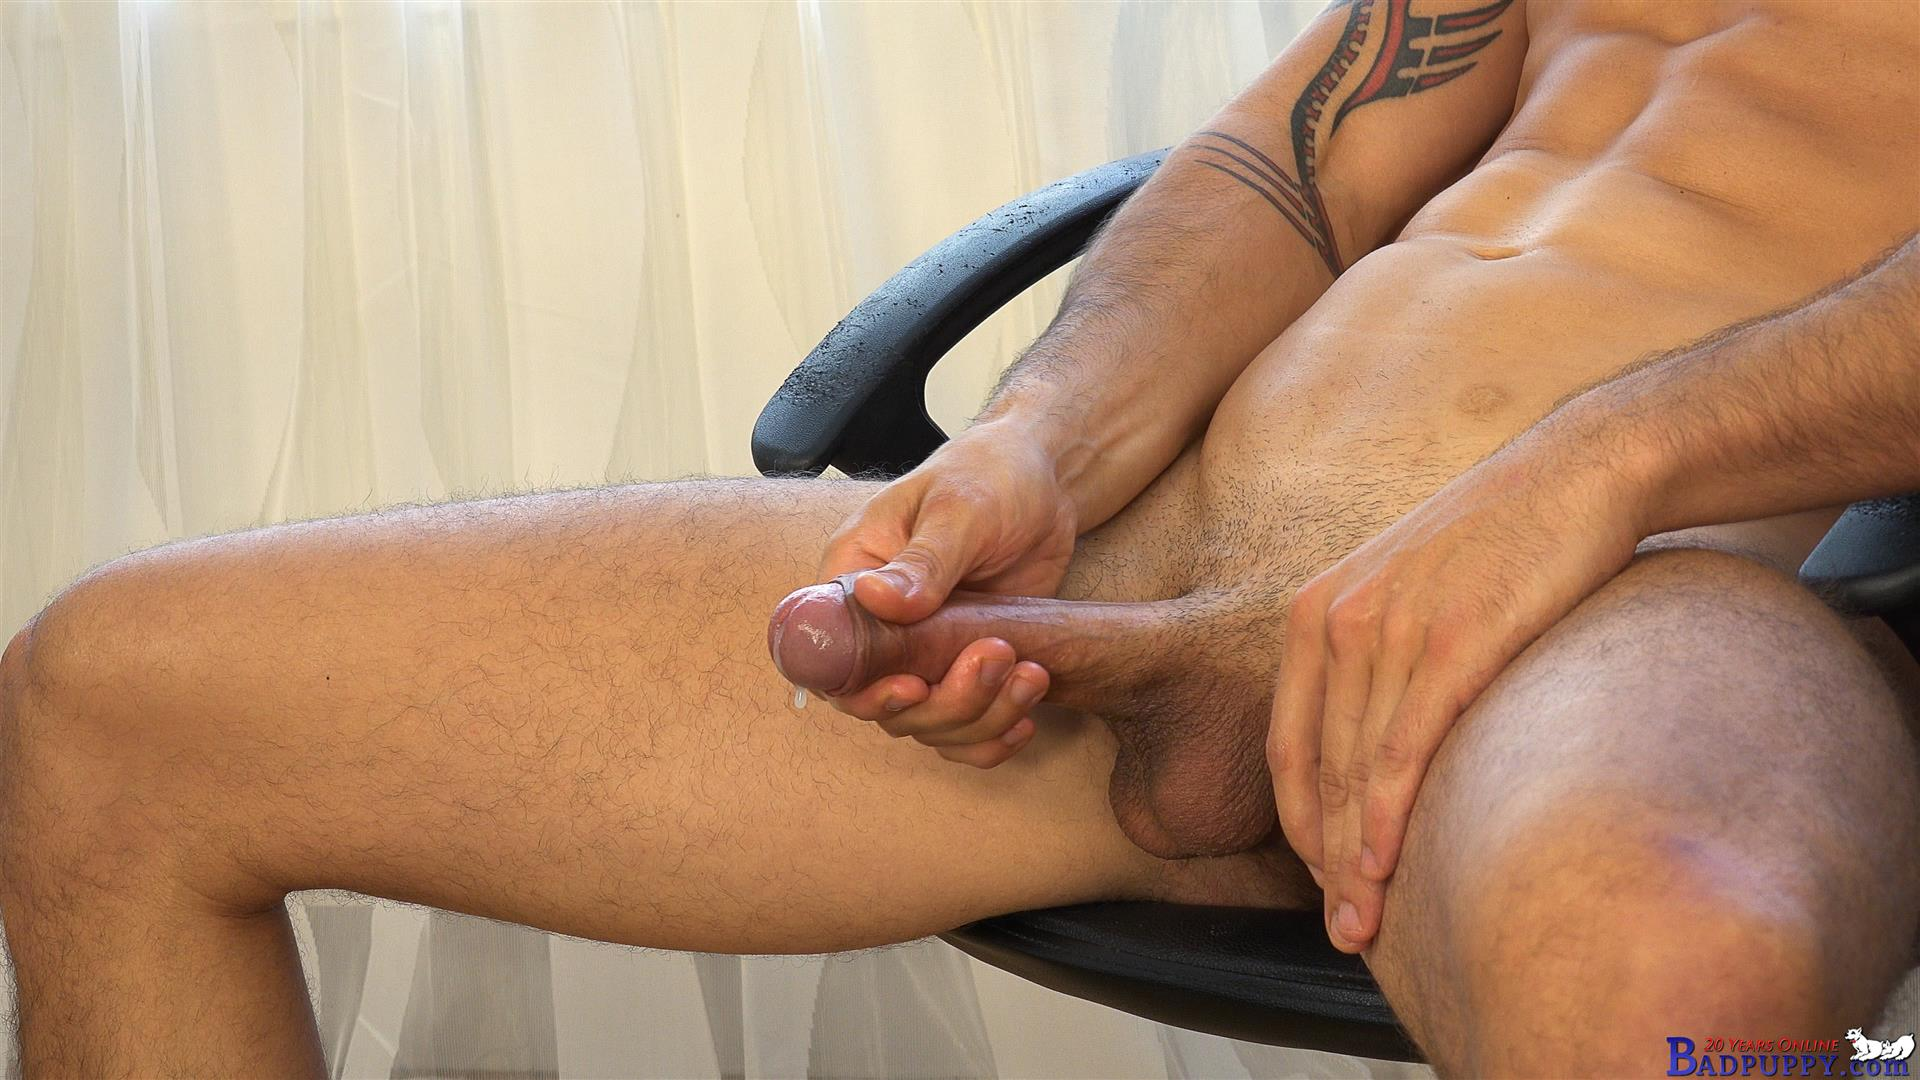 Badpuppy-Milan-Pis-Straight-Guy-With-Big-Uncut-Cock-Masturbating-Amateur-Gay-Porn-21 Straight Italian Banker Masturbating His Big Uncut Cock